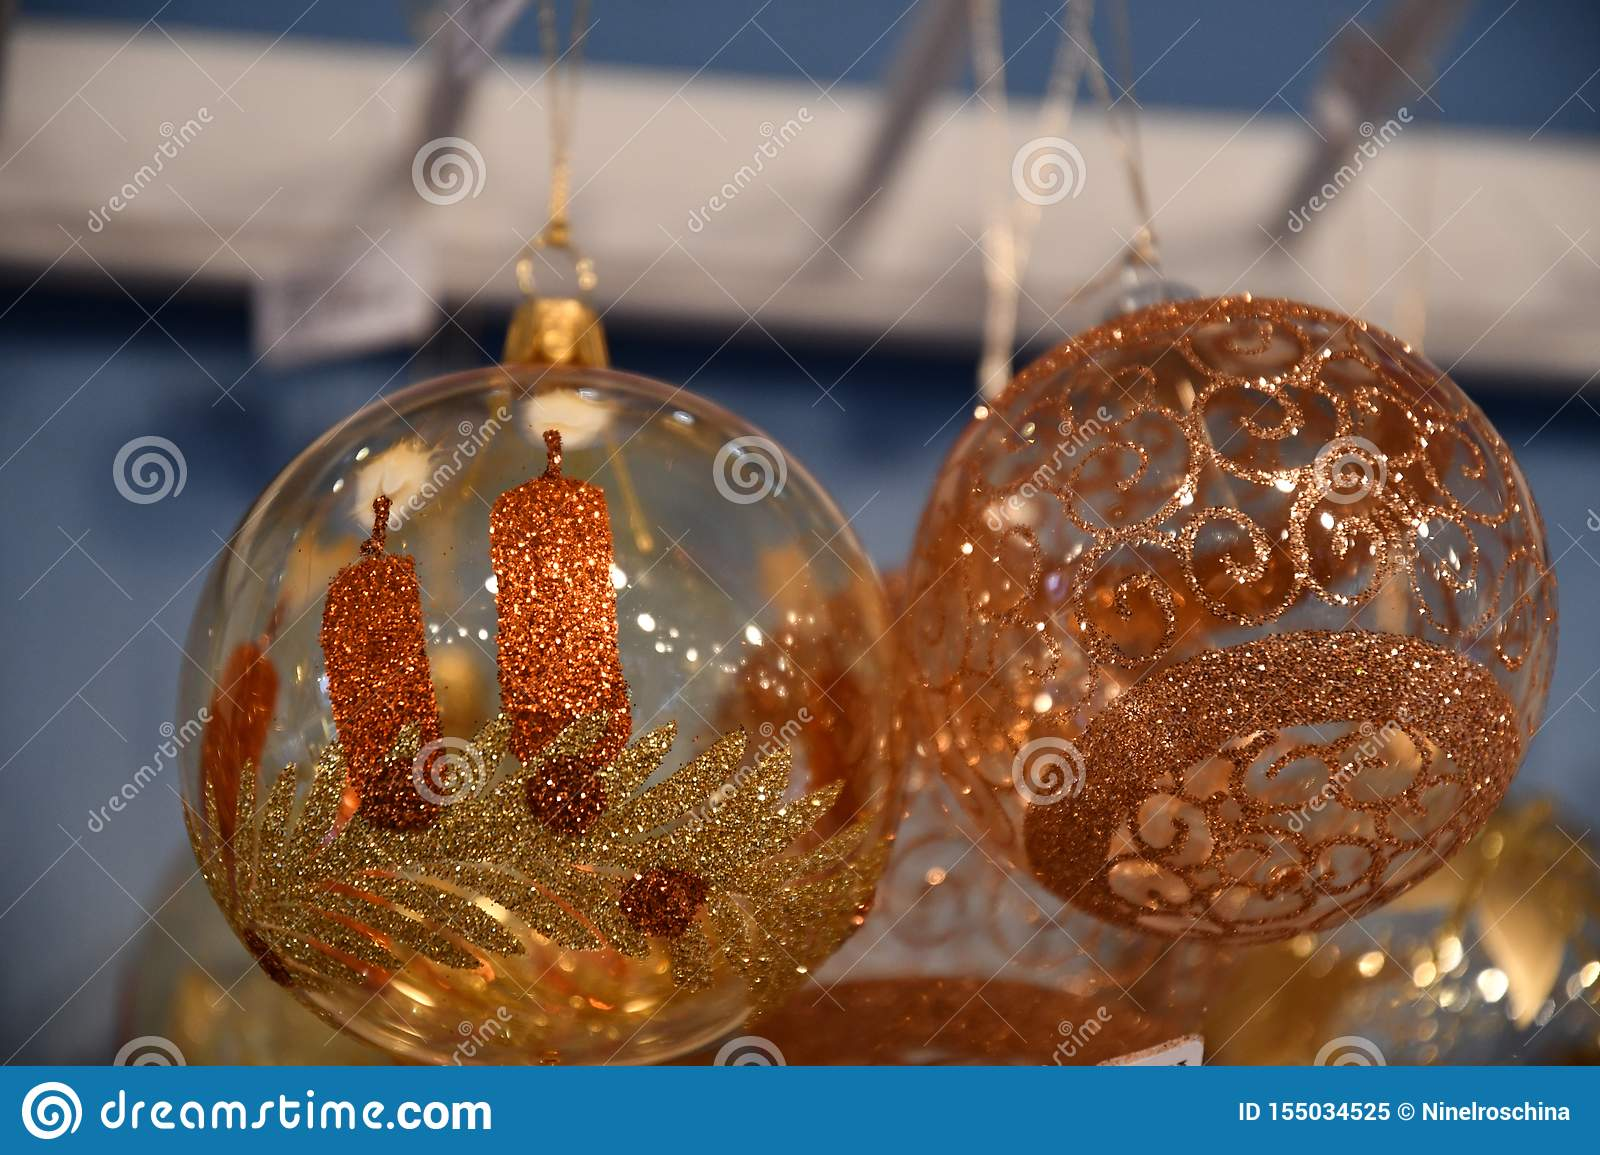 Fairytale Christmas Decorations.Transparent Glass Bulbs With Golden Frosty Pattern And Hand